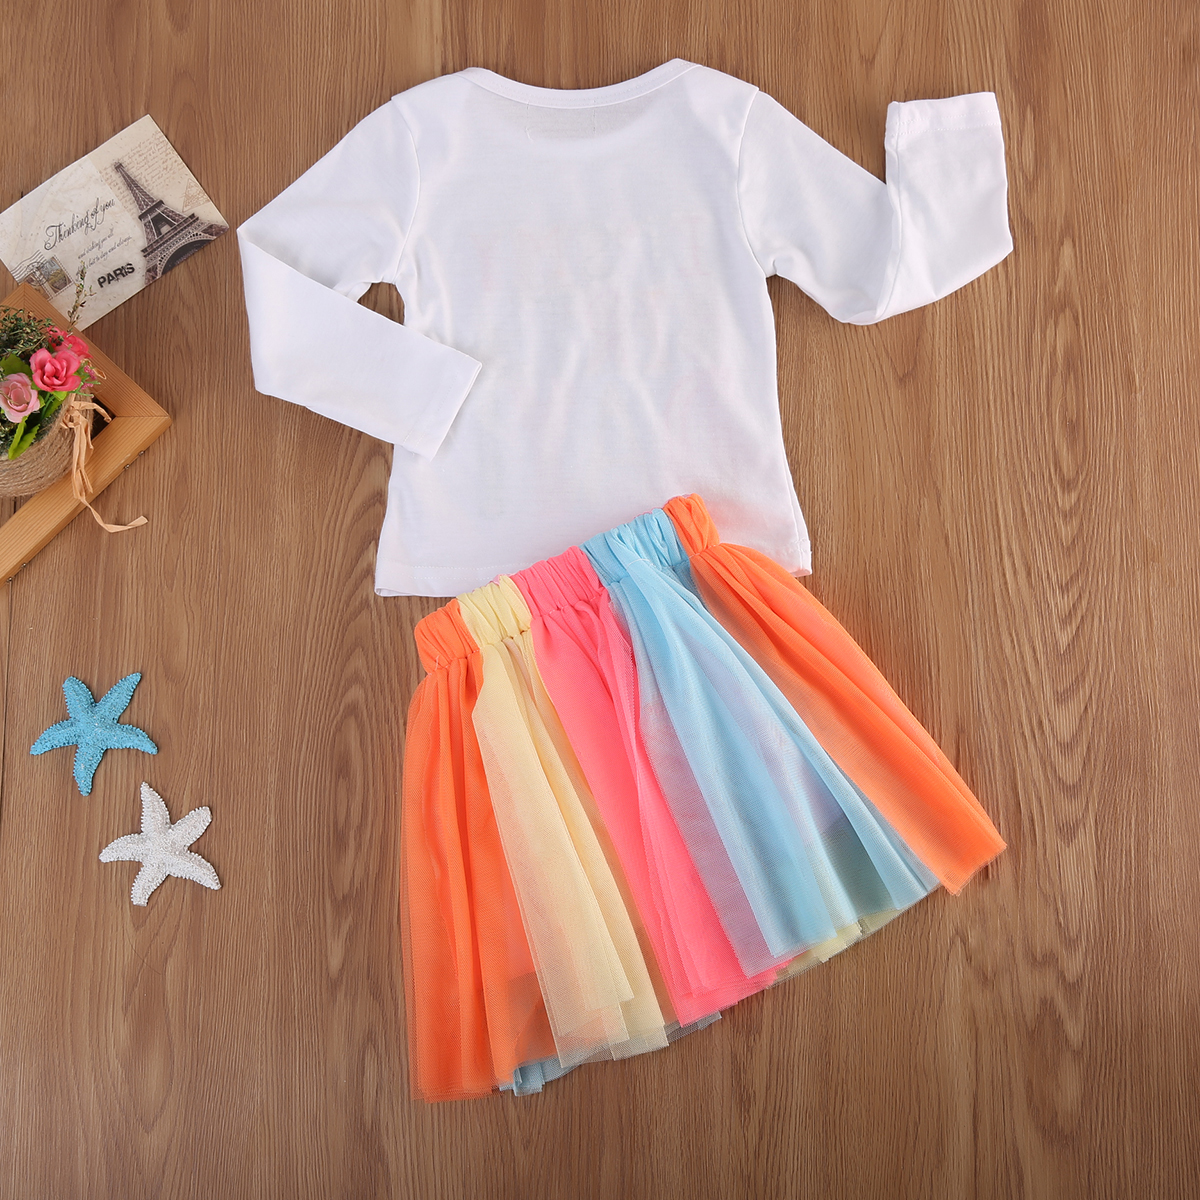 2ba611bf1 2Pcs Baby Girl Kid Toddler Long Sleeve T shirt+Lace tutu Skirt Dress Outfit  Sets Birthday Clothes-in Clothing Sets from Mother & Kids on Aliexpress.com  ...